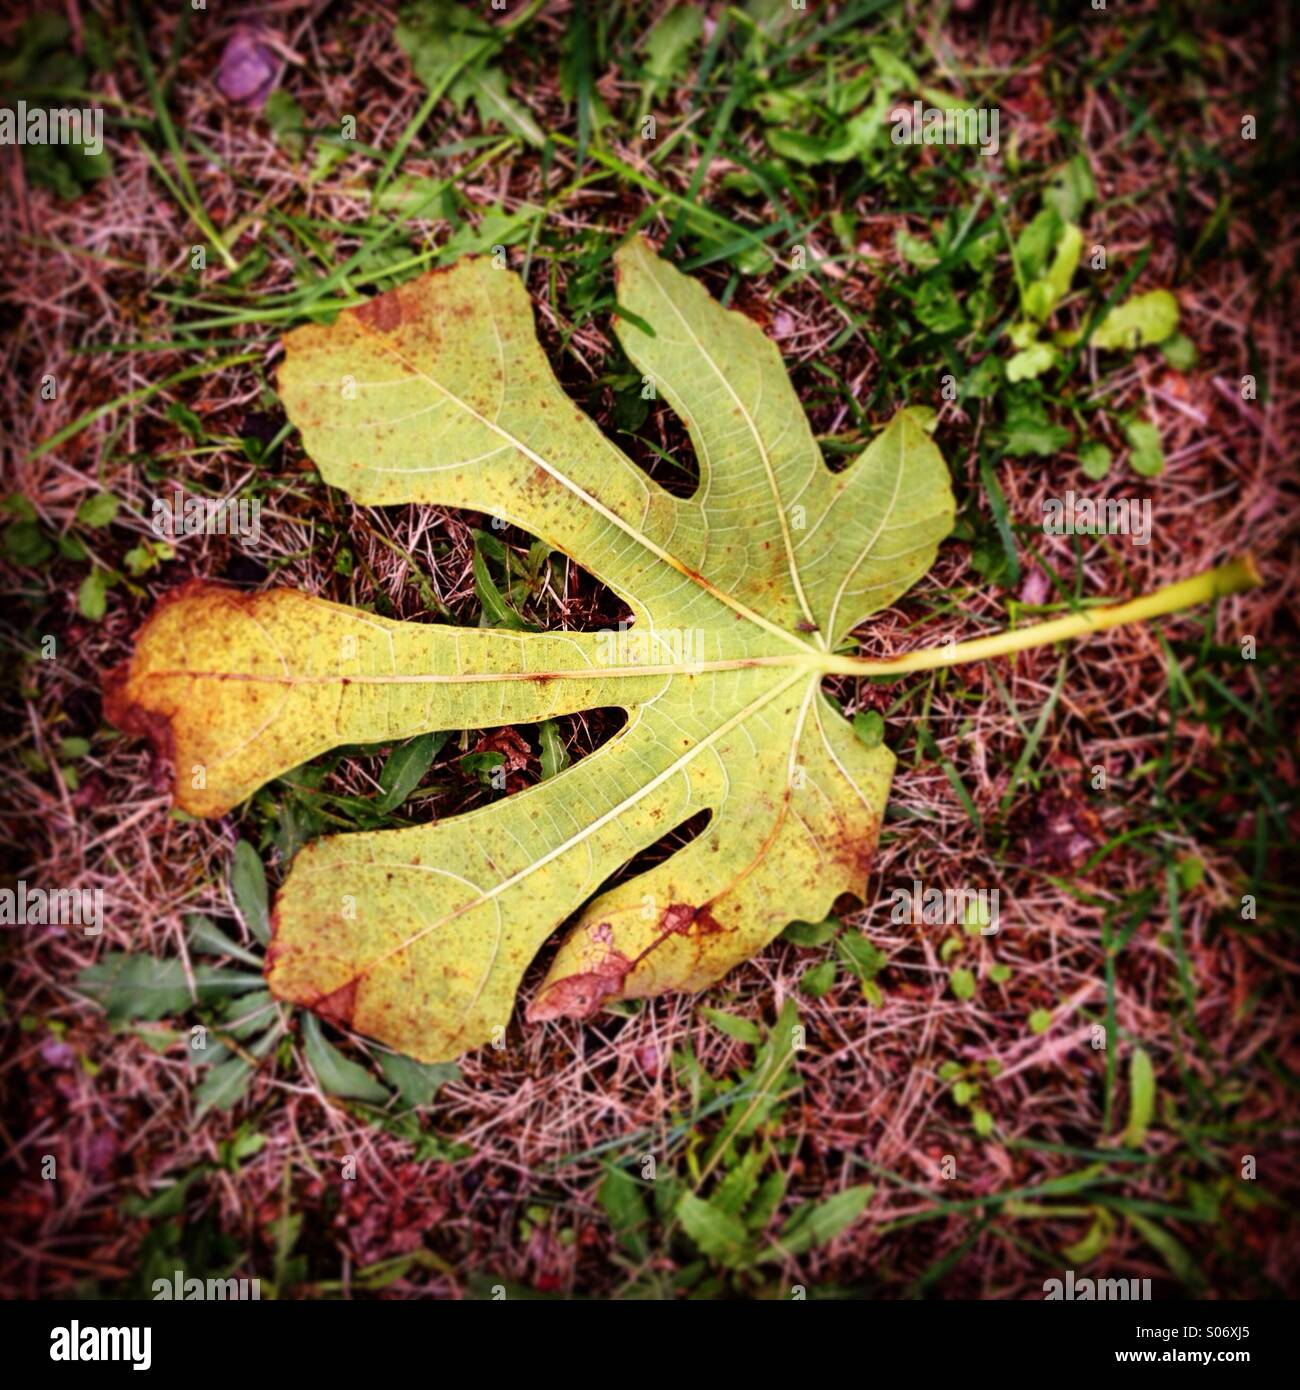 Fallen leaf from a fig tree in autumn - Stock Image